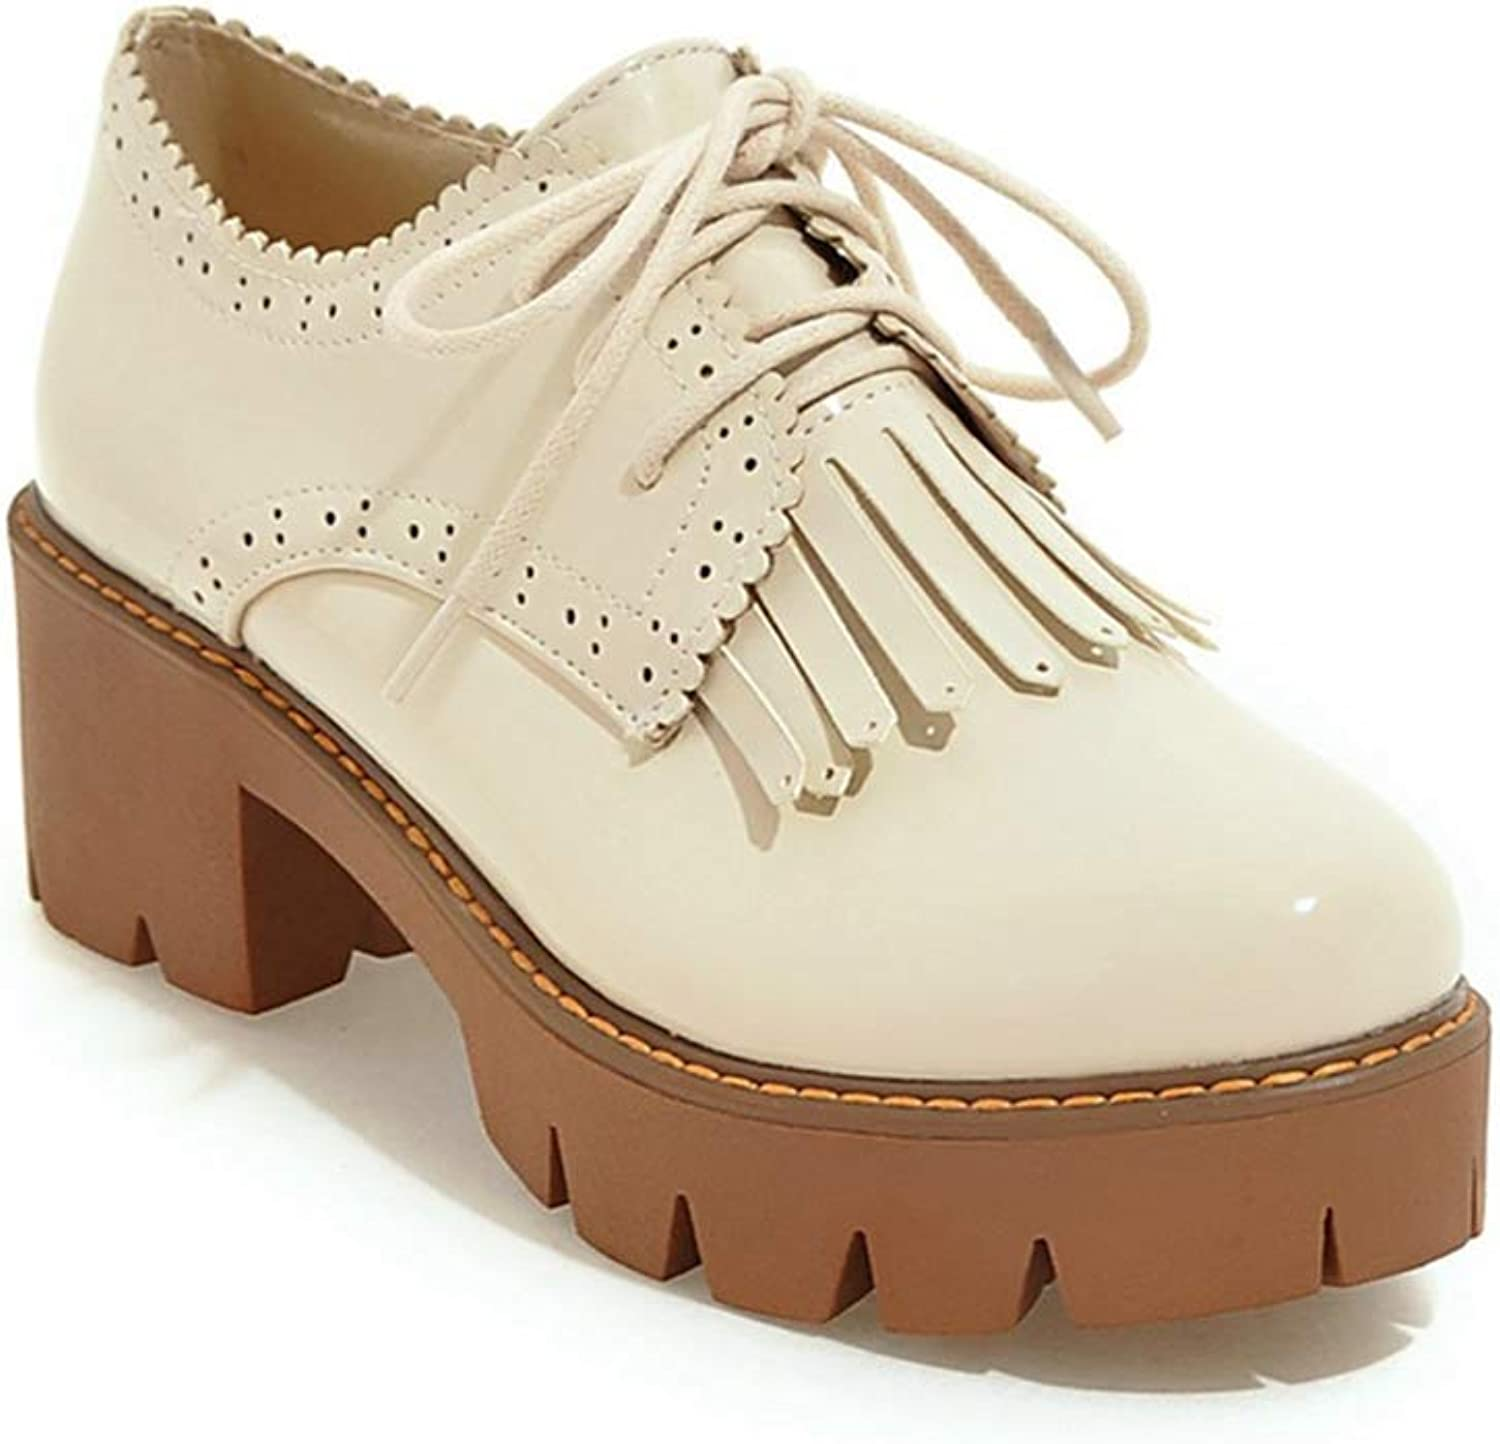 GIY Women's Lace Up Platform Oxford Pumps Round Toe Wingtip Tassels Chunky Mid Heel Vintage Dress shoes